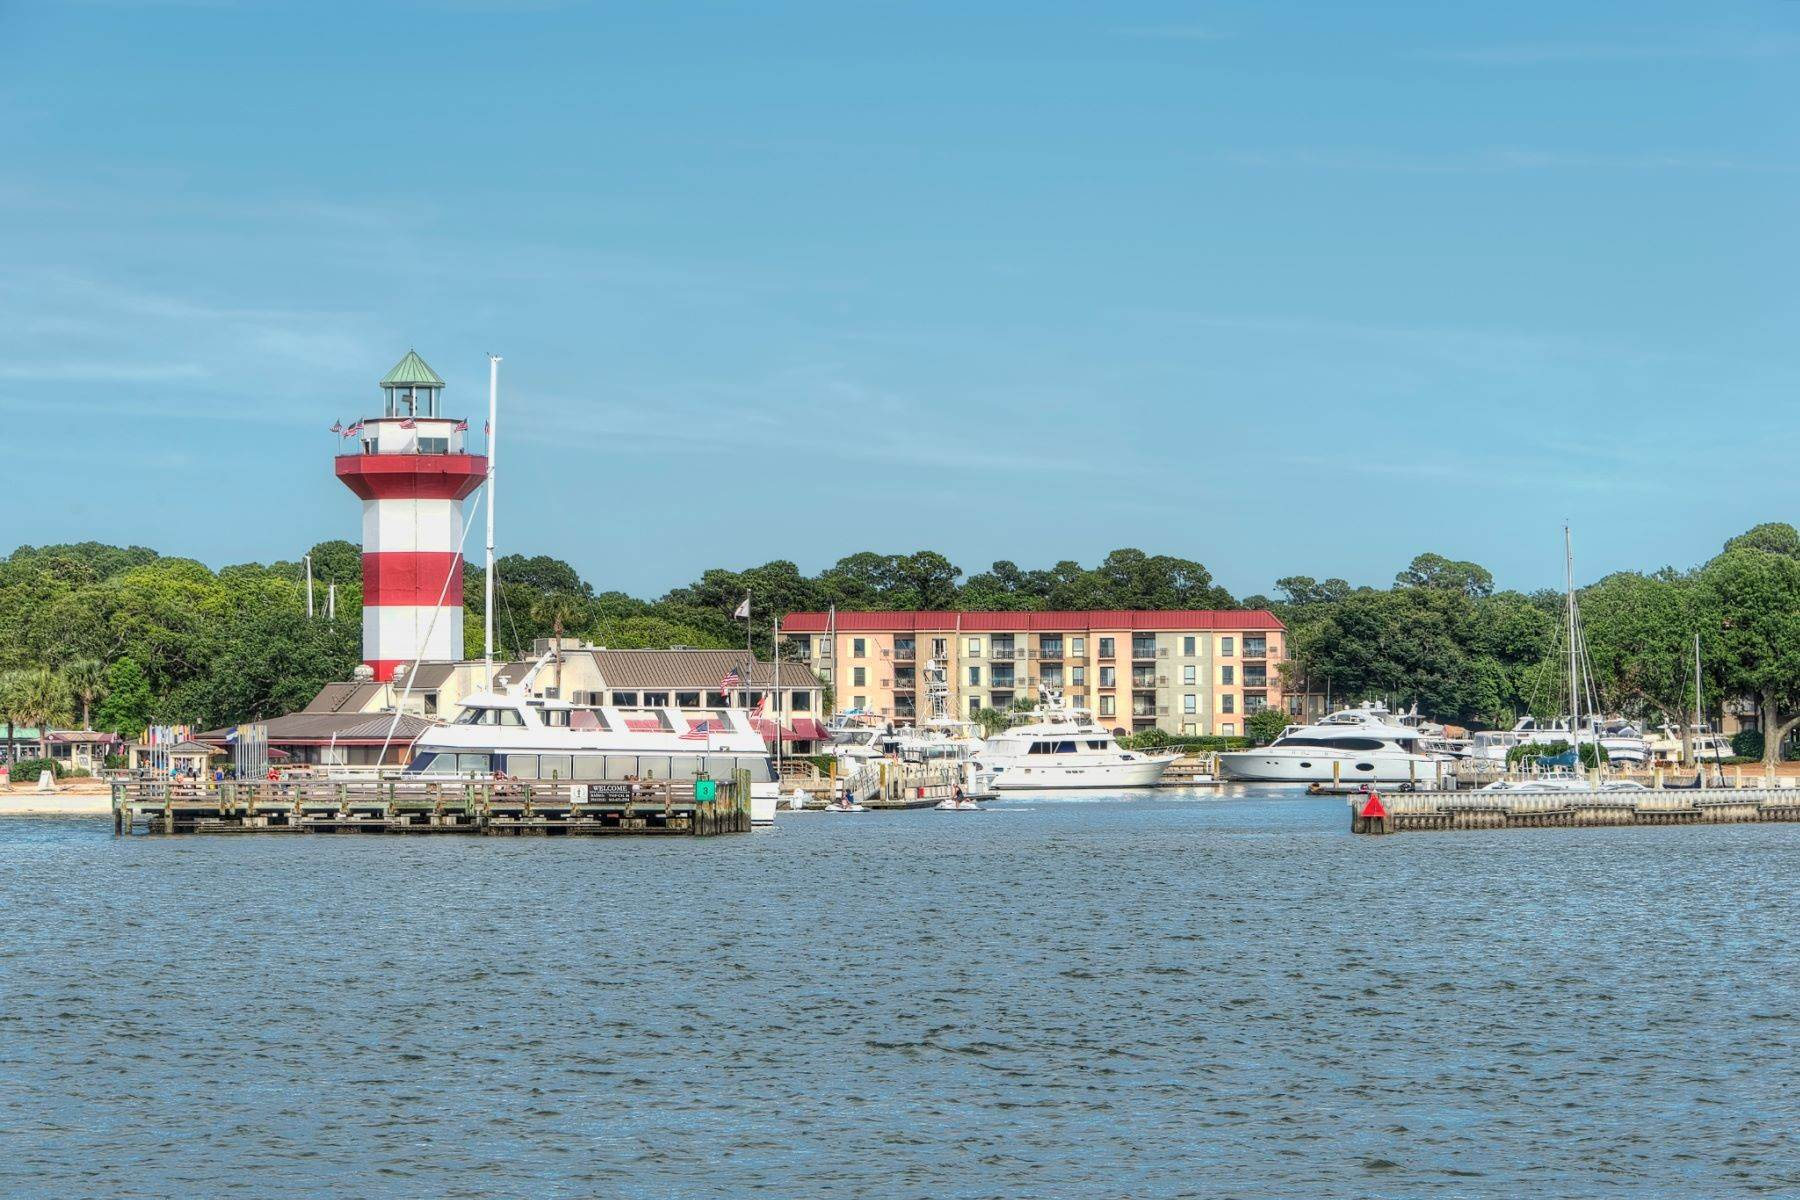 2. Property for Sale at Harbour Town Boat Slip 26 Harbour Town Yacht Basin Hilton Head Island, South Carolina 29928 United States